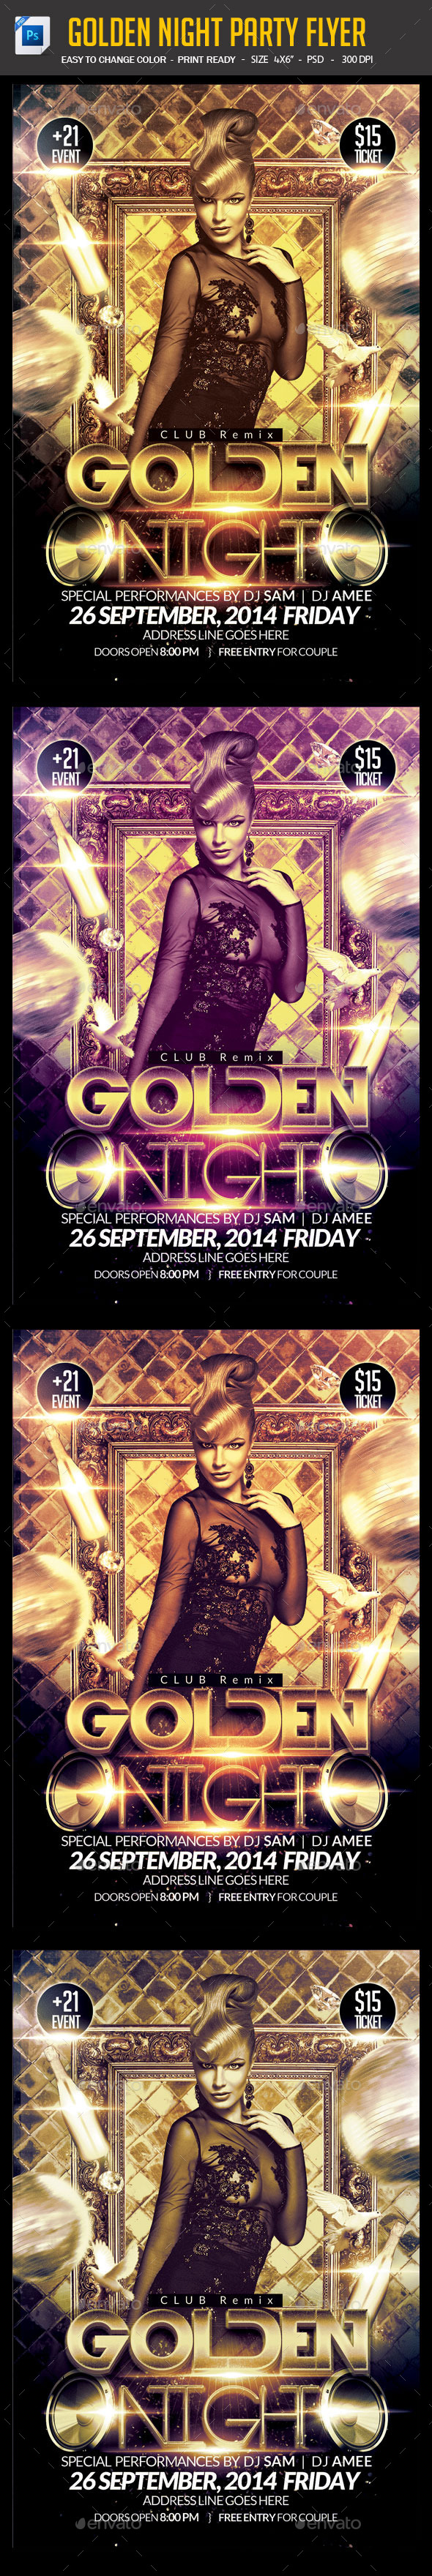 Golden Night Party Flyer - Clubs & Parties Events